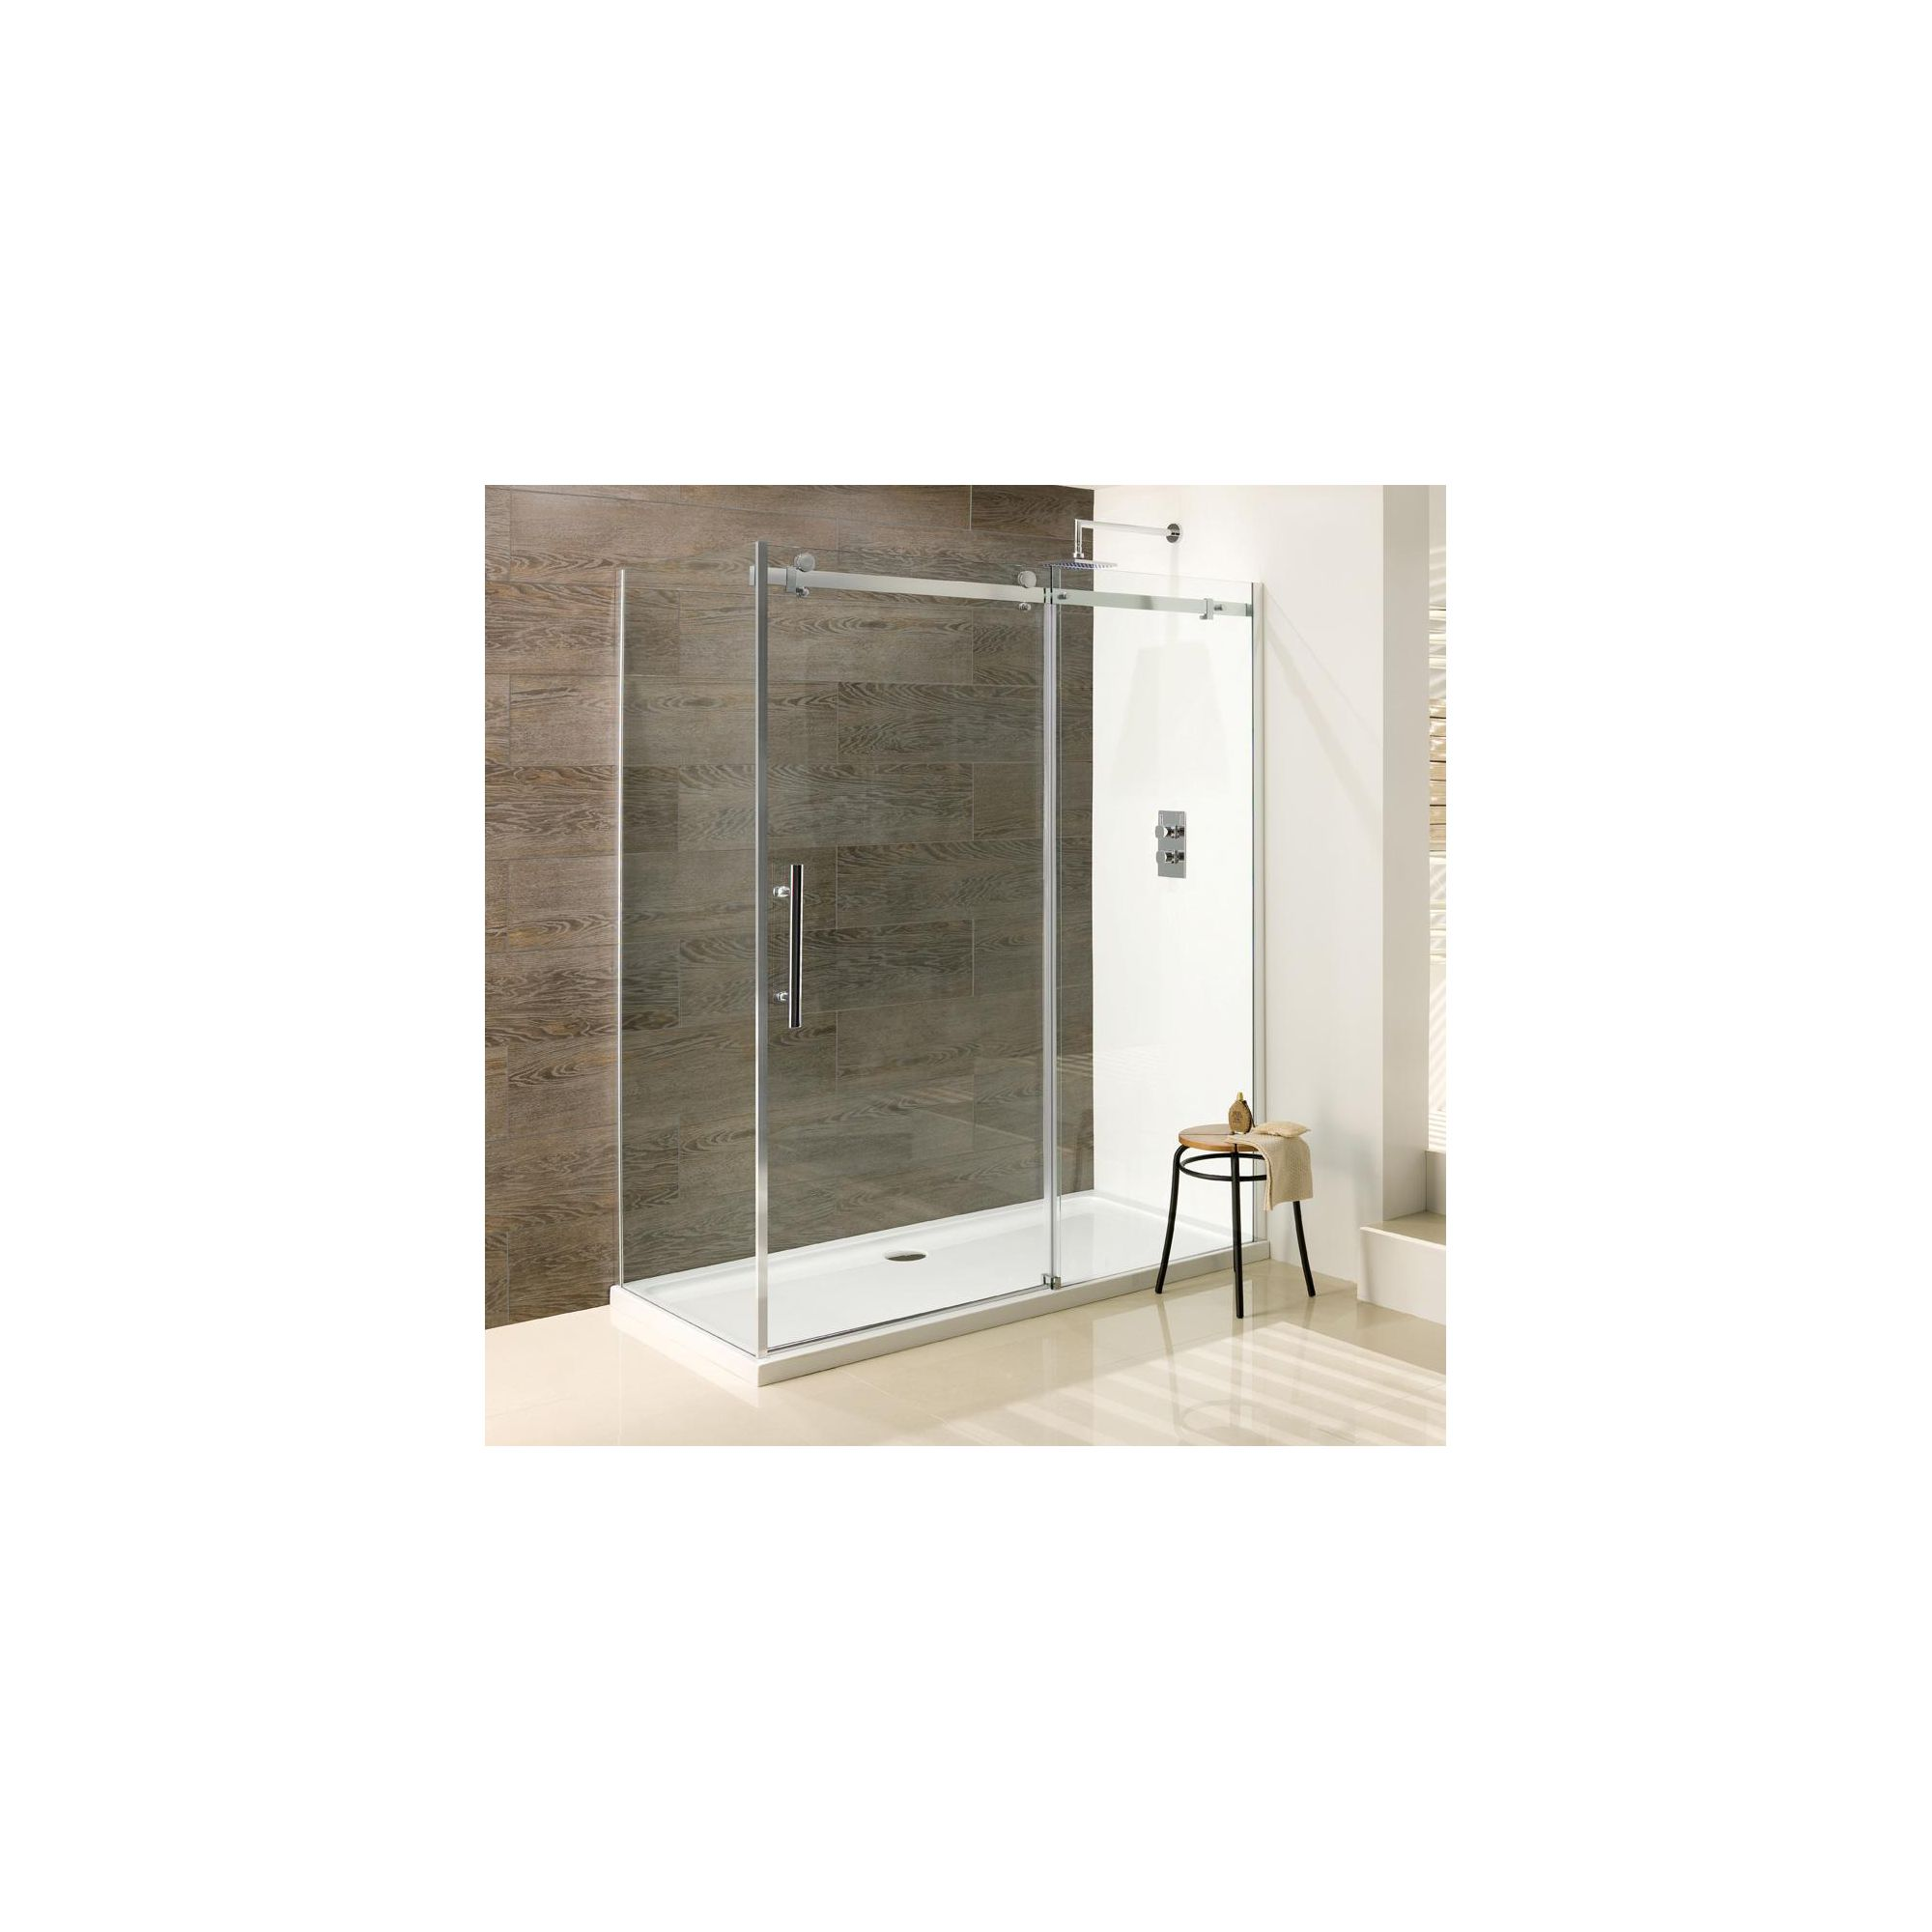 Duchy Deluxe Silver Sliding Door Shower Enclosure with Side Panel 1000mm x 800mm (Complete with Tray), 10mm Glass at Tesco Direct